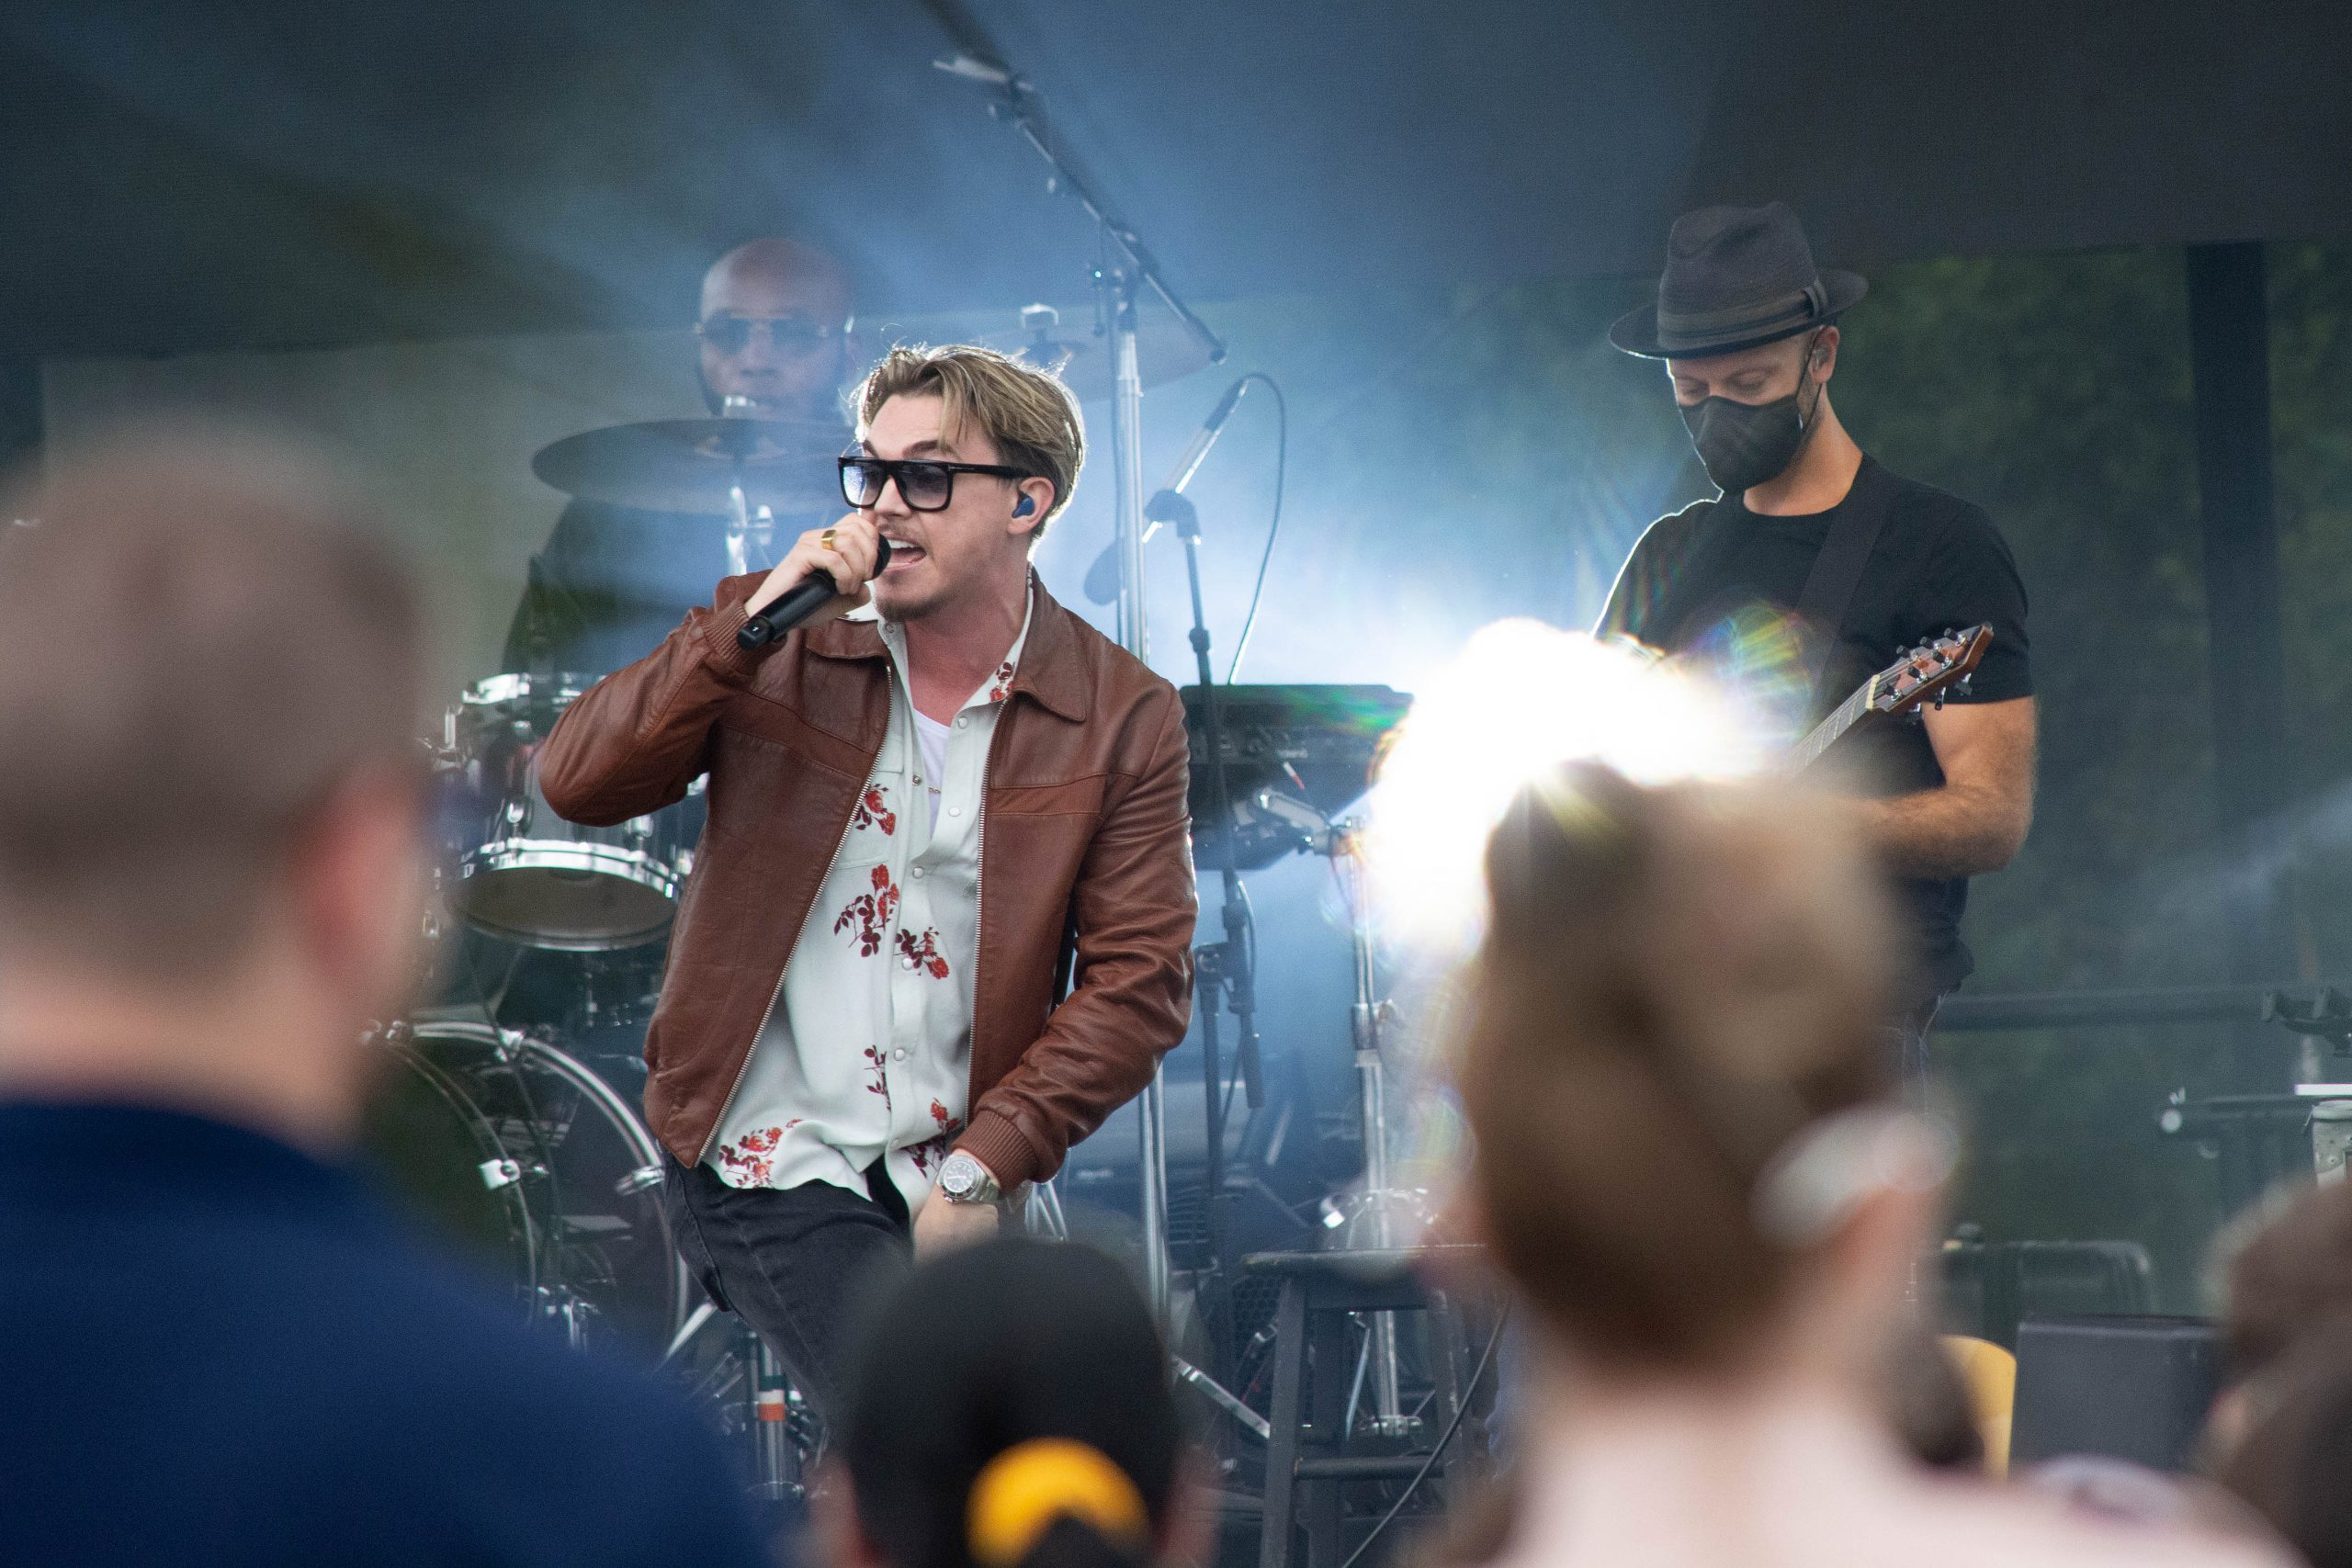 """Jesse McCartney performed at the New York State Fair to a sea of fans, from young to old. He performed hit songs from the early 2000s such as """"She's No You."""""""